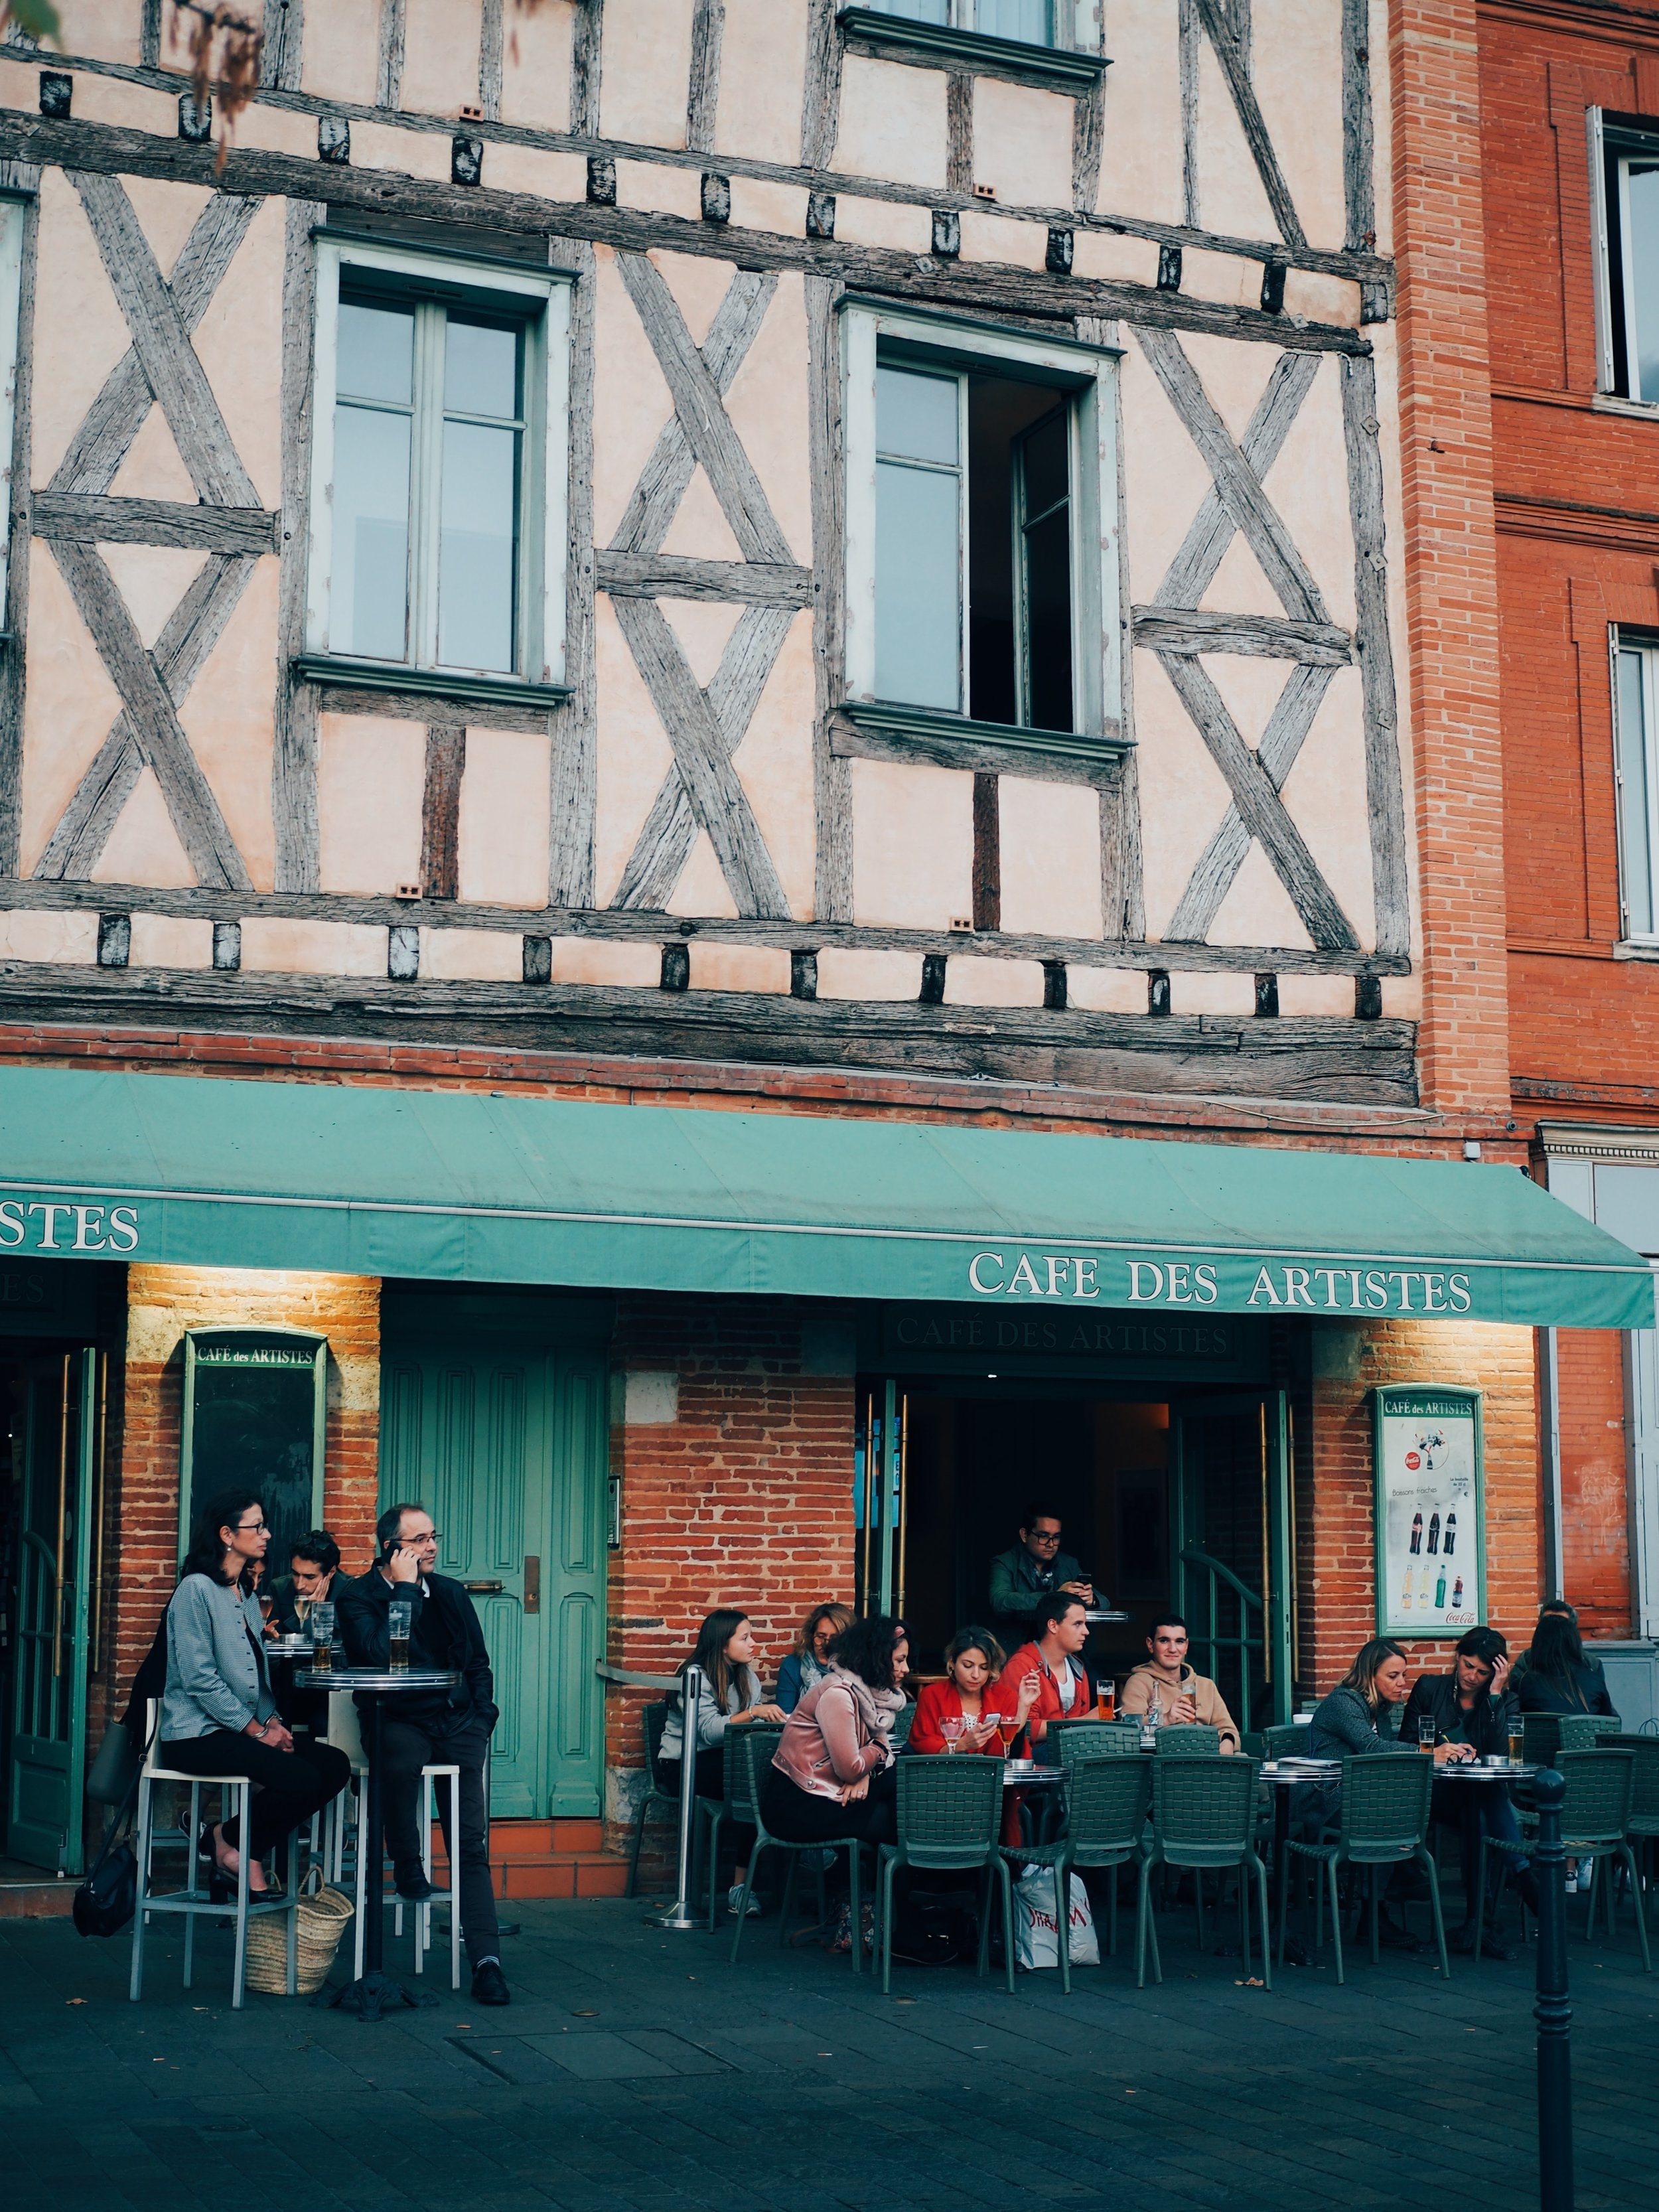 Cafe des Artistes in the evening